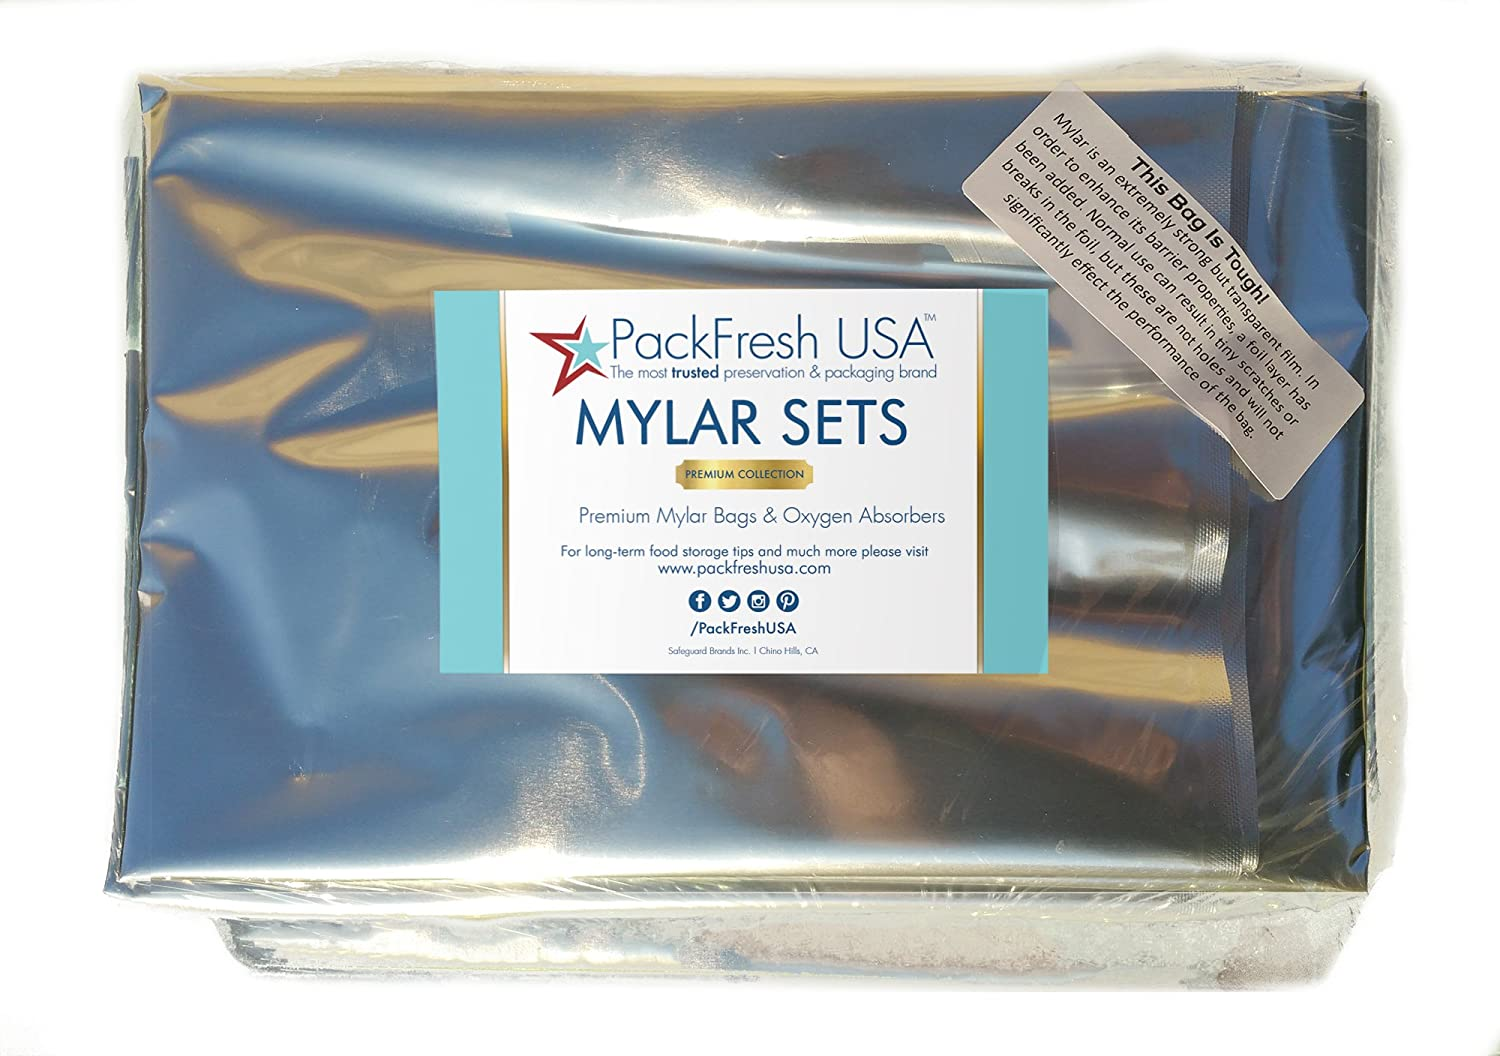 5 Gallon Heavy Duty Mylar Bags with 2000cc Oxygen Absorbers 5 with PackFreshUSA LTFS Guide